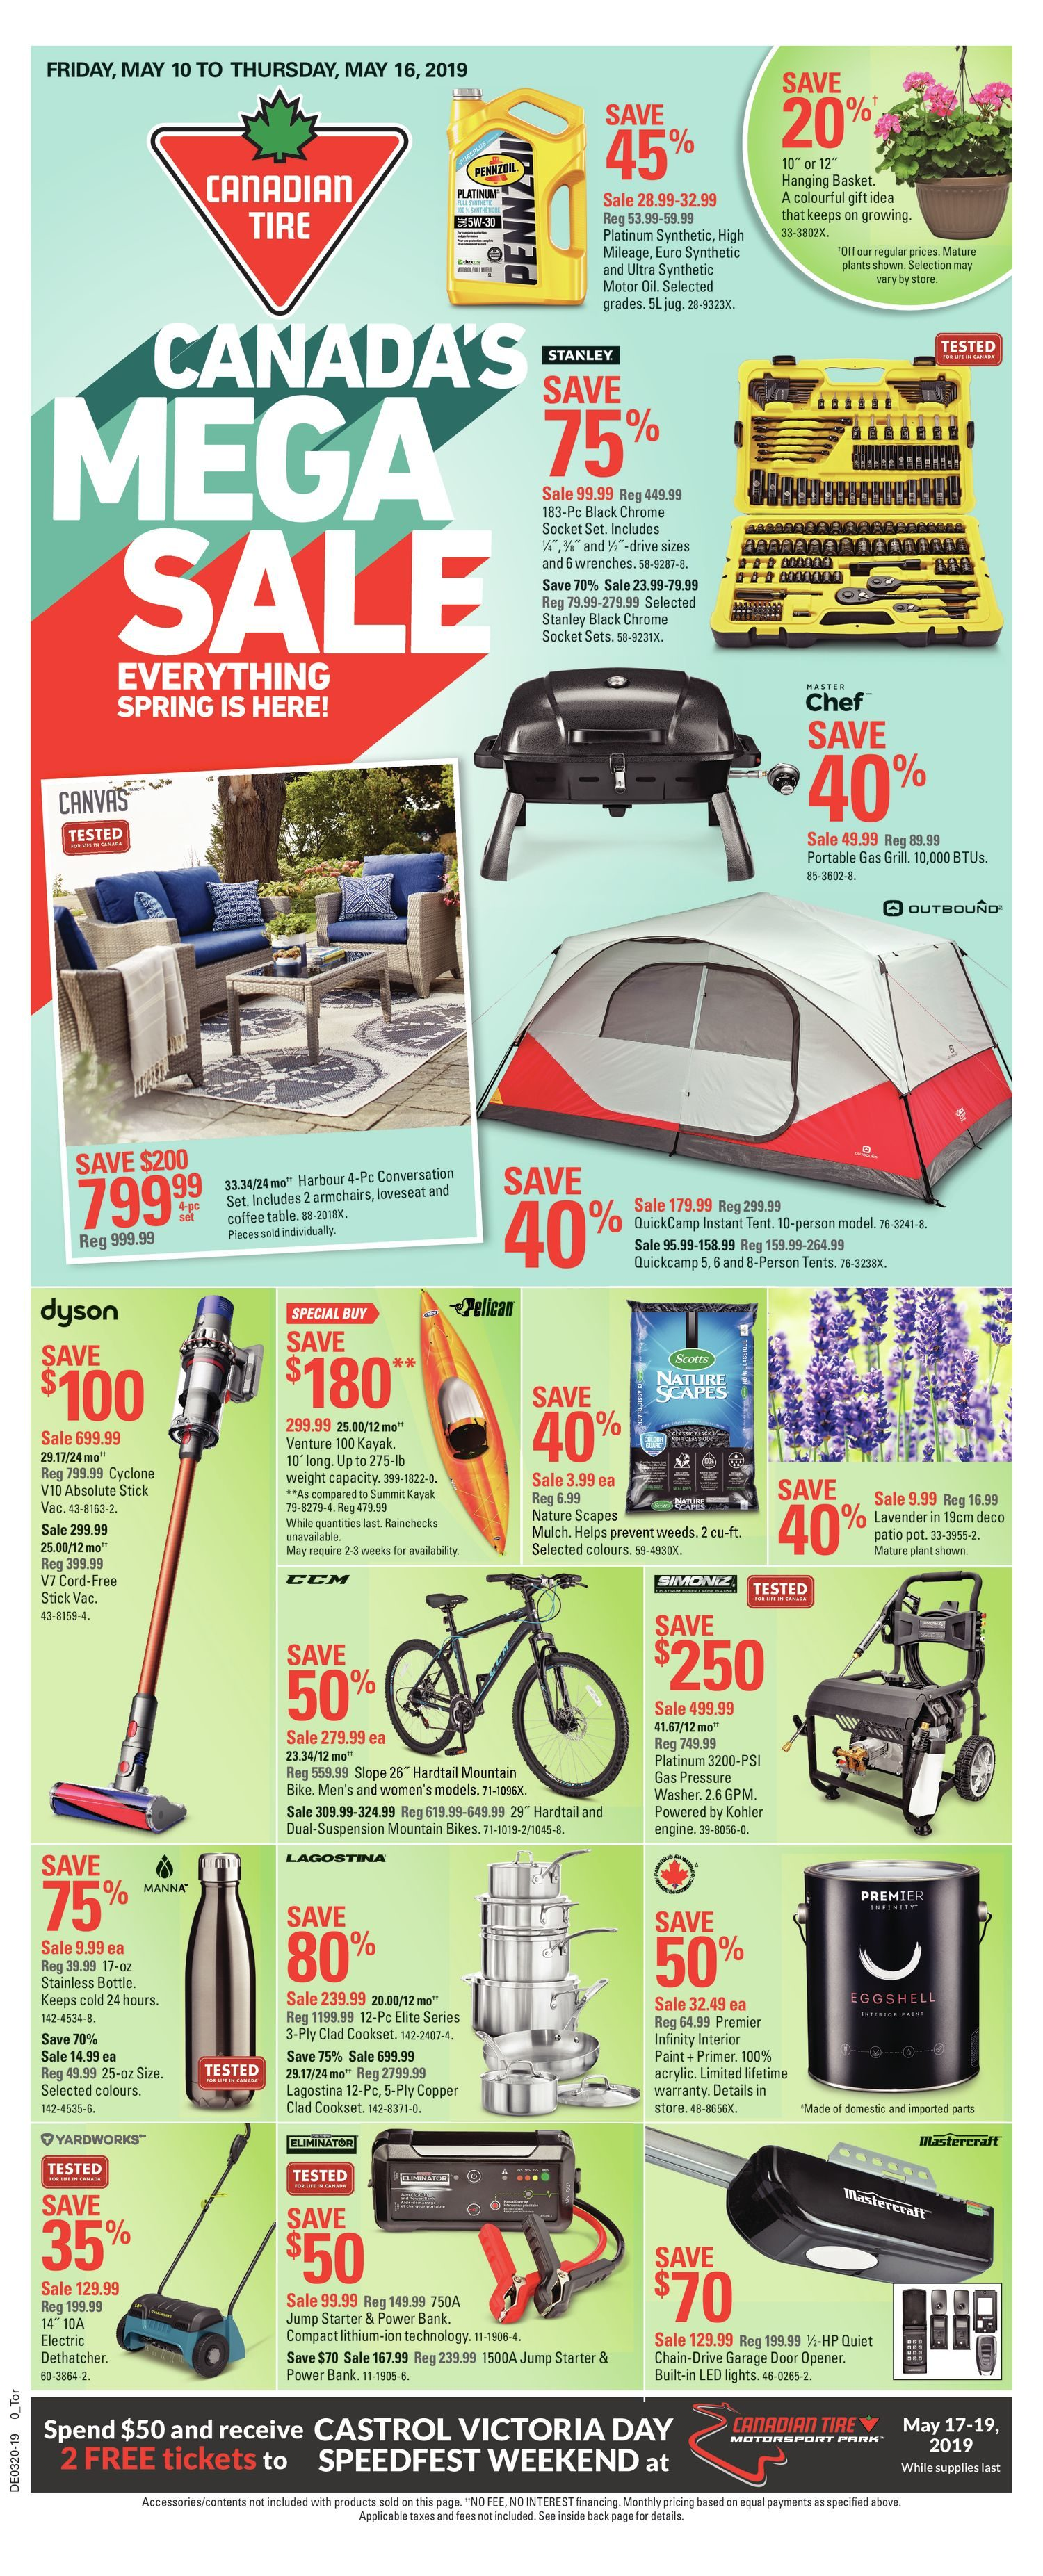 c994219db92 Canadian Tire Weekly Flyer - Weekly - Canada's Mega Sale - May 10 ...